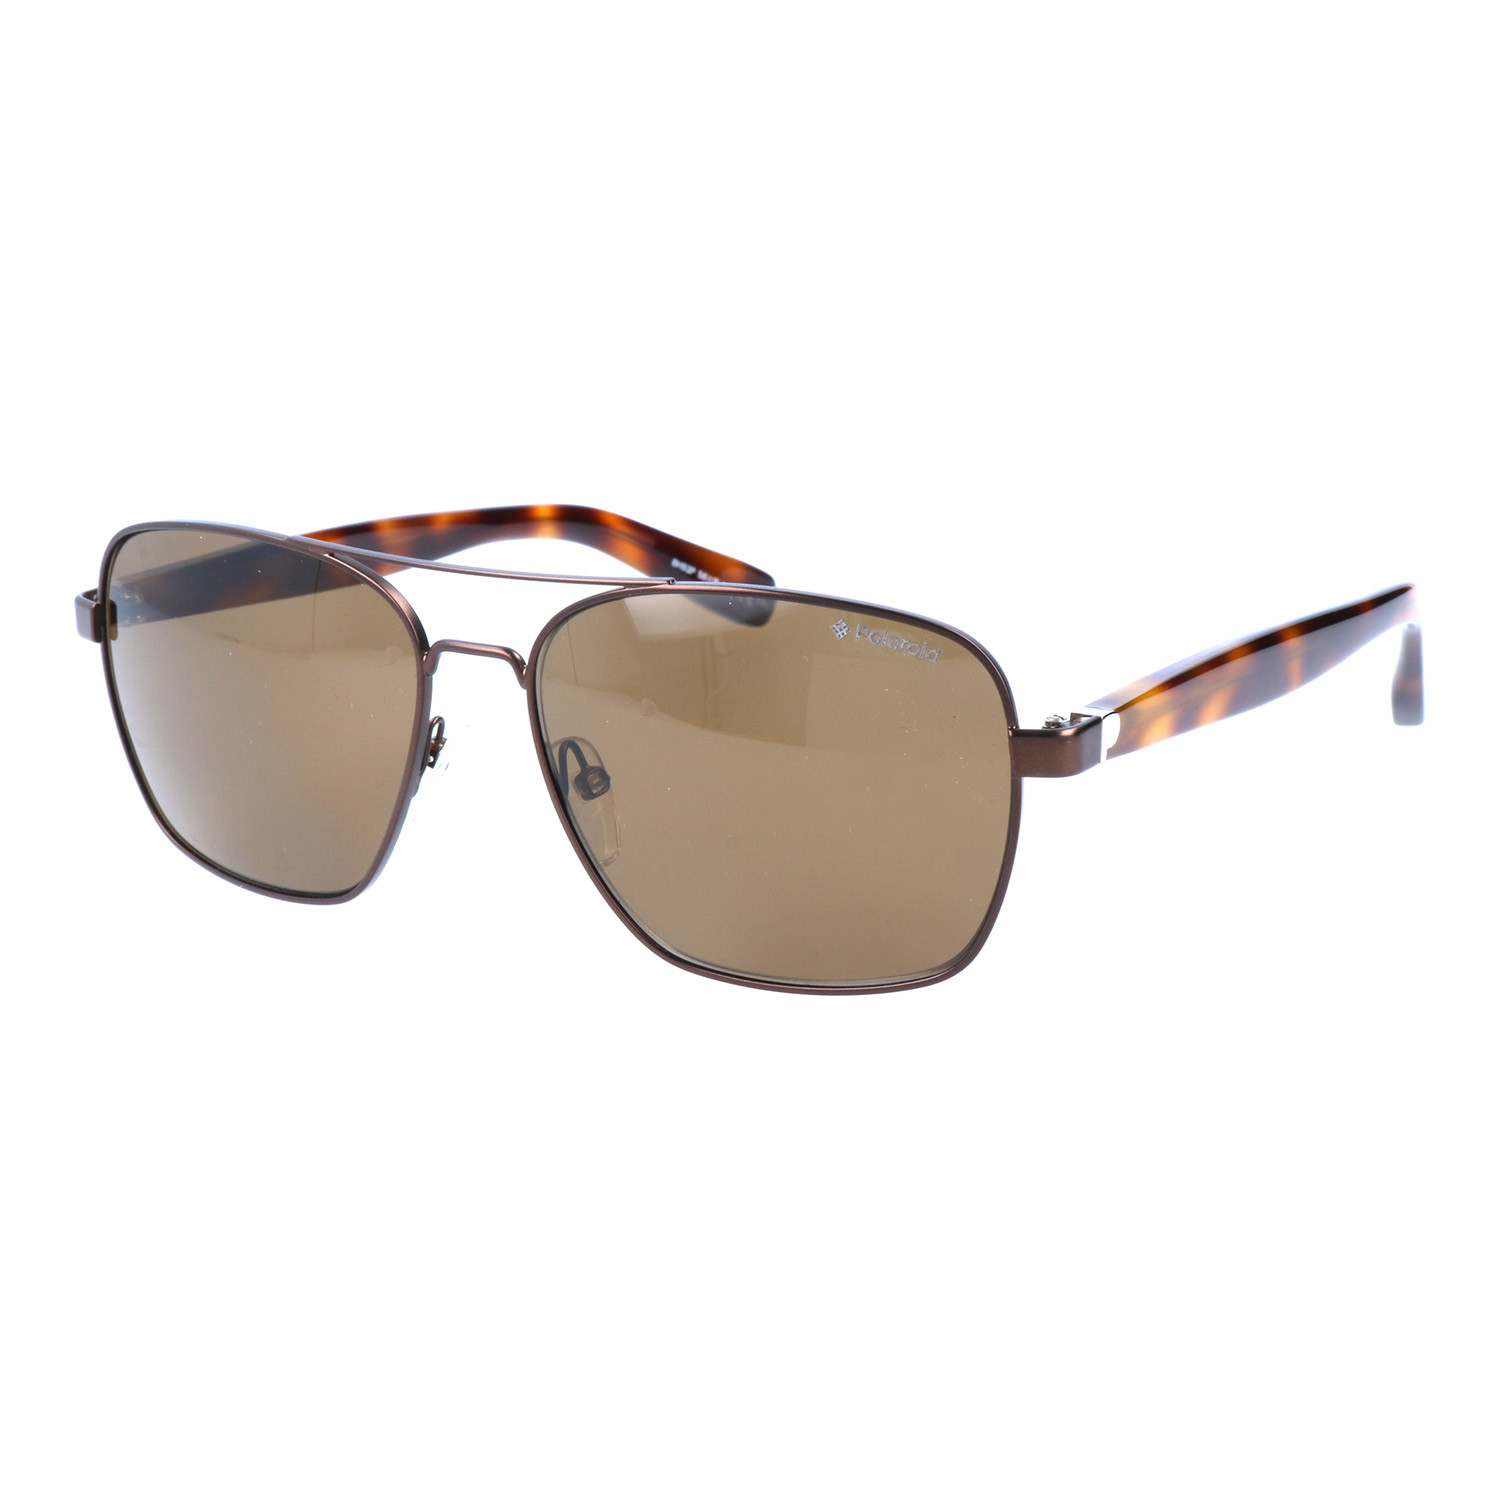 40b07d7135fd Thick Temple Square Aviator    Tortoise + Brown - Polaroid ...